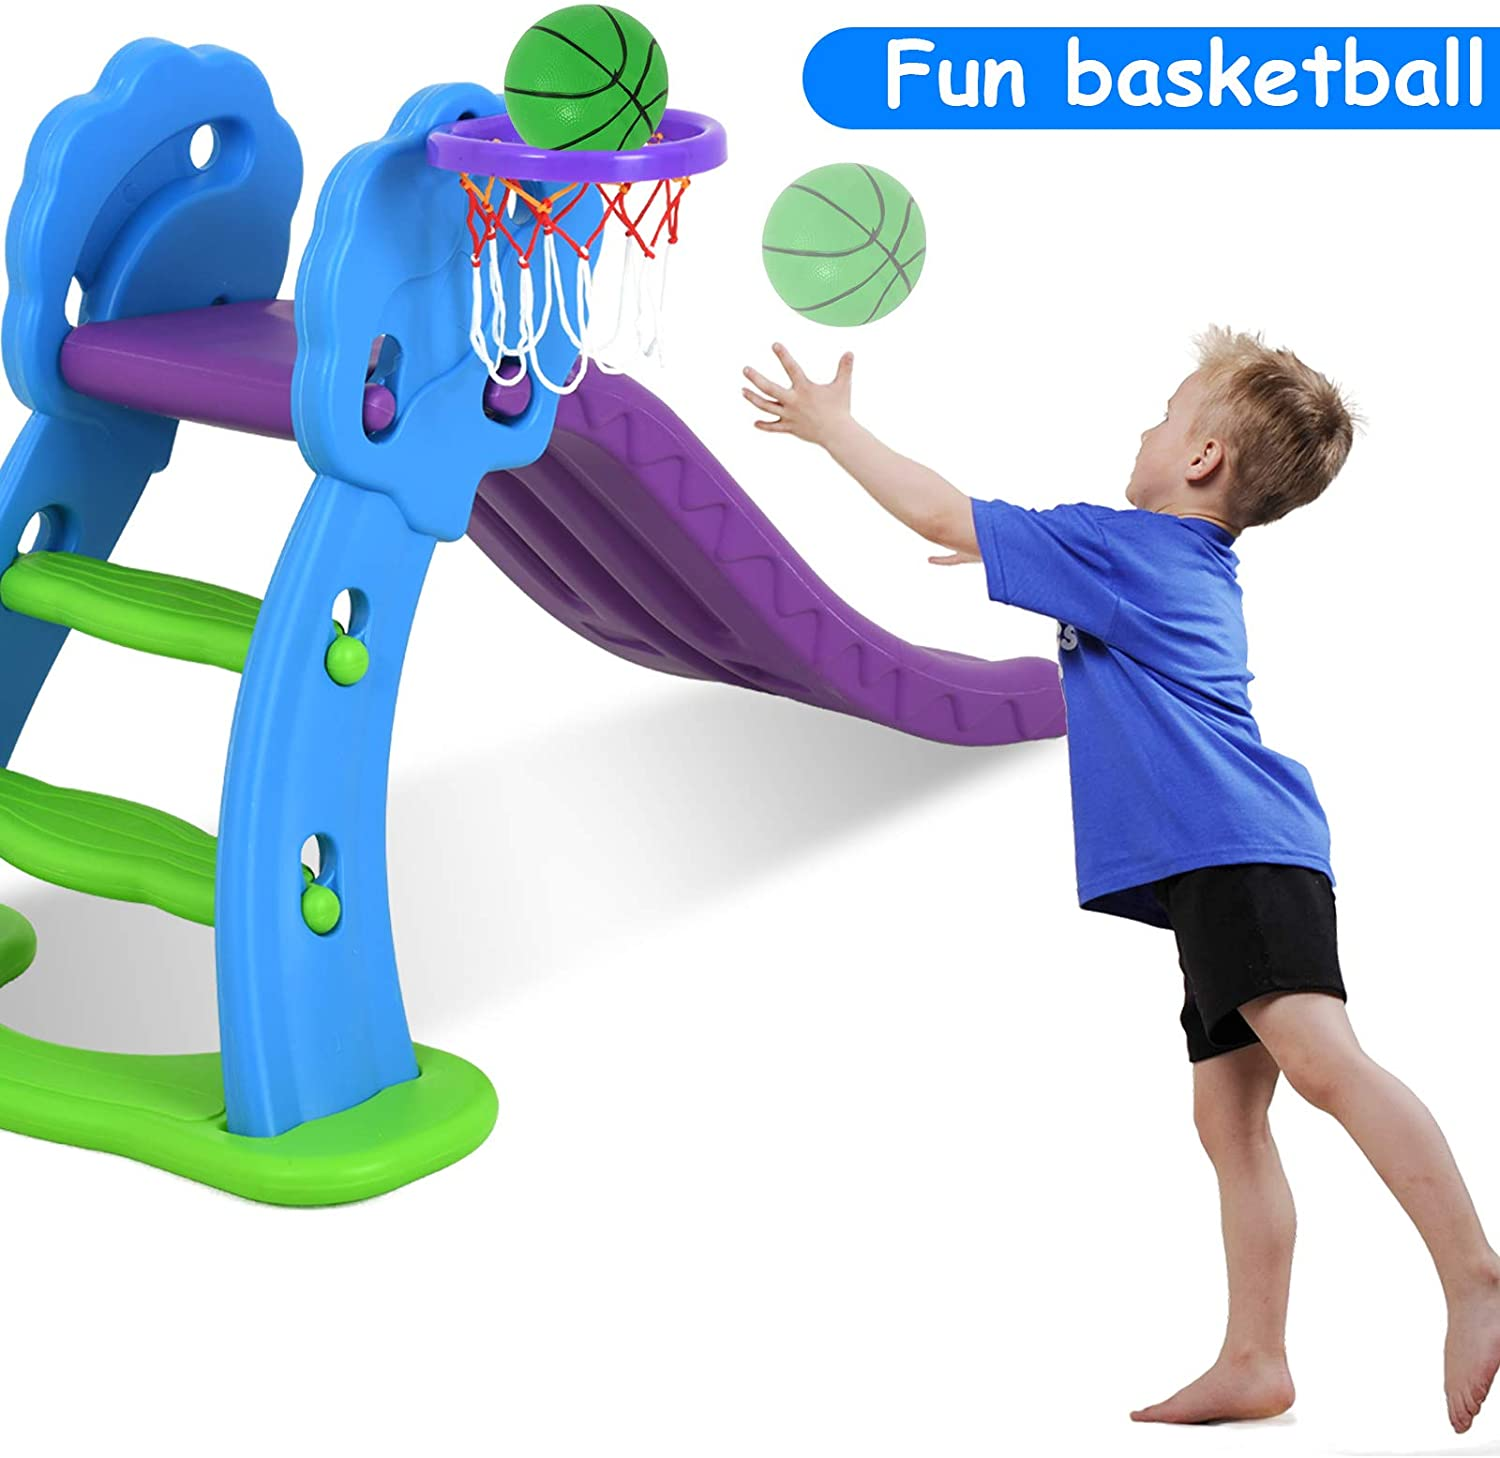 Uenjoy Kids Climber Indoor and Outdoor Freestanding Slide Playset